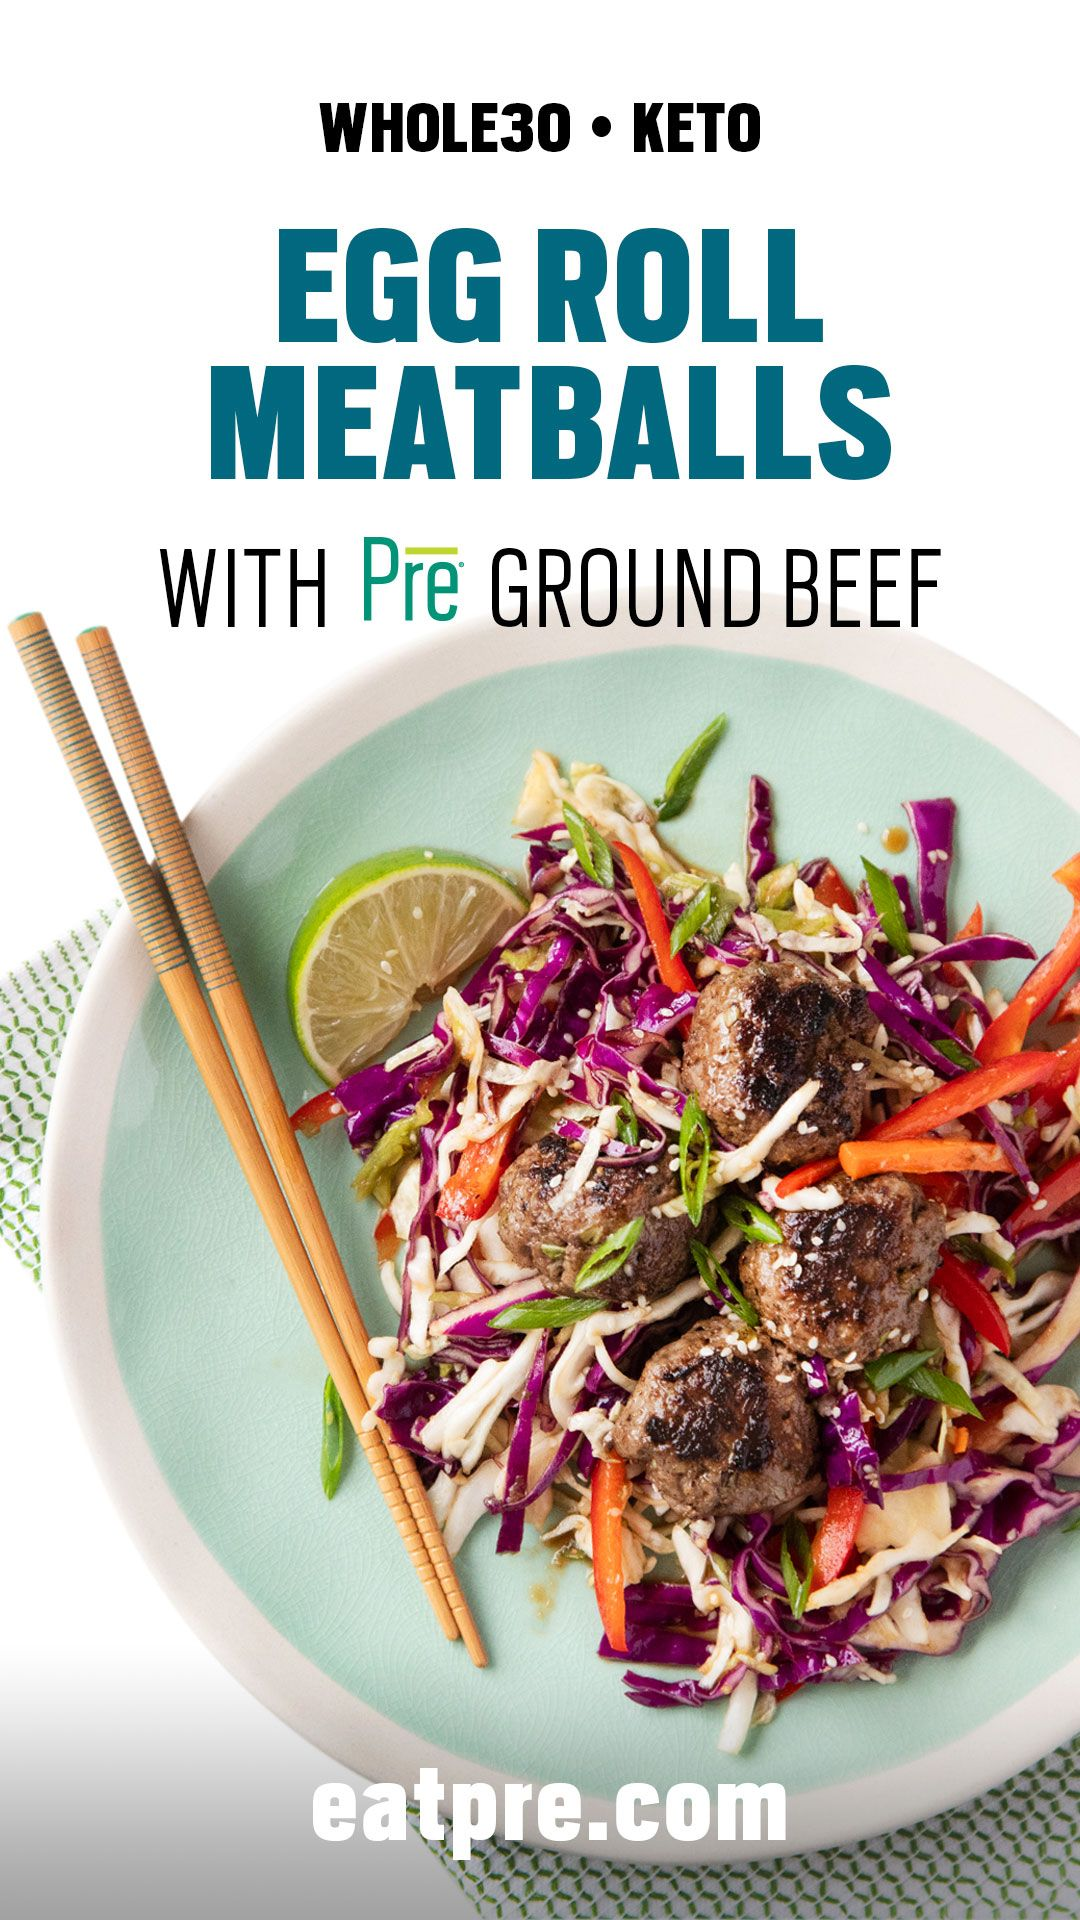 Egg roll meatballs with cabbage slaw recipe whole 30